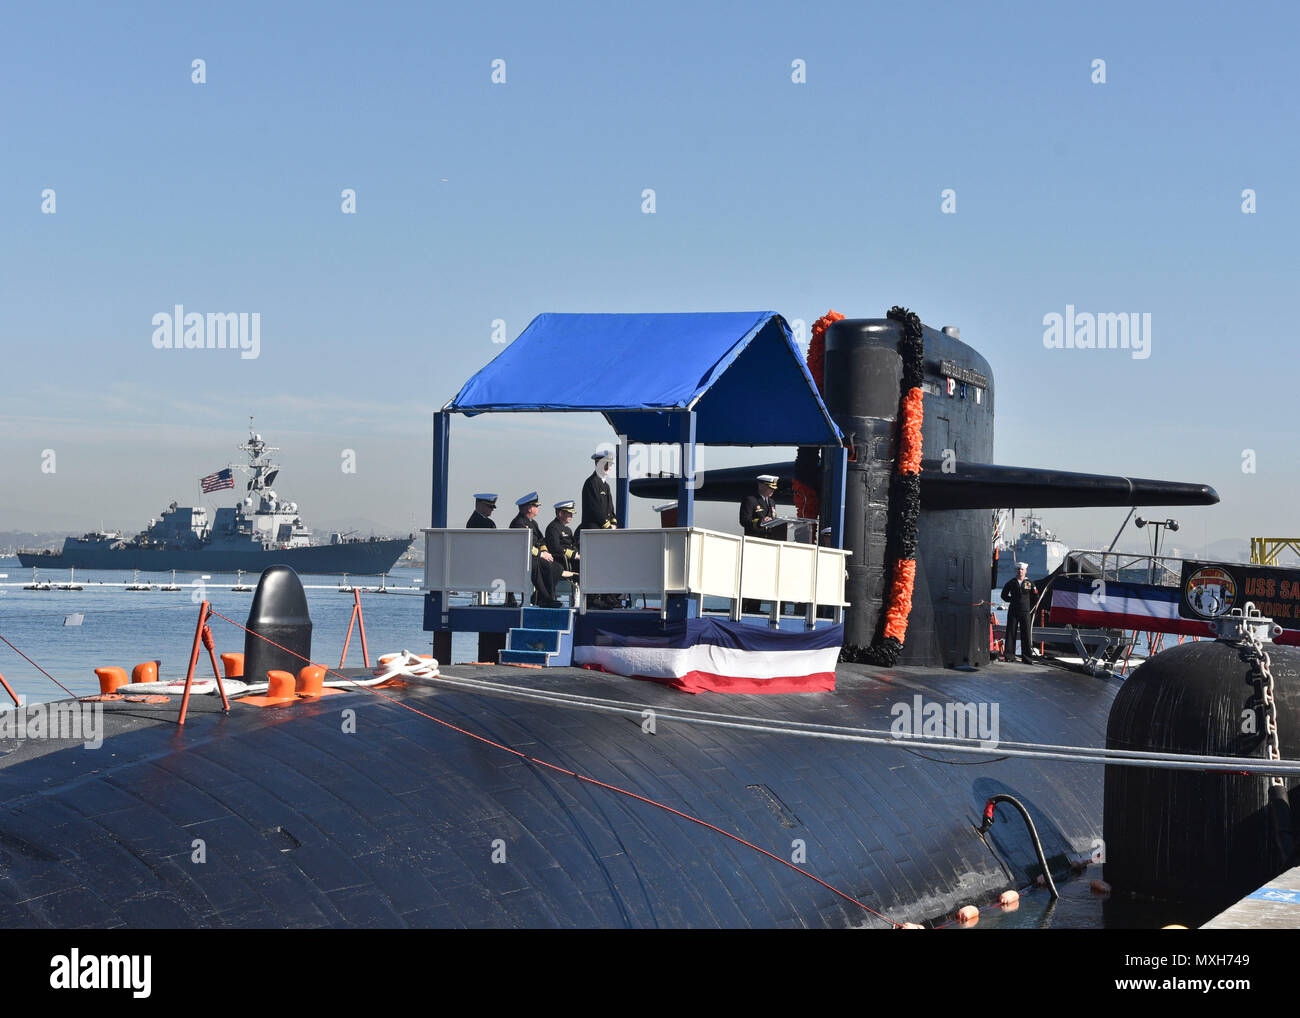 161104-N-TW634-0035  SAN DIEGO (Nov. 4, 2016) Cmdr. Jeff Juergens, commanding officer of the Los Angles-class fast attack submarine USS San Francisco (SSN 711), delivers remarks during a change of command and farewell ceremony on Naval Base Point Loma. The San Francisco is scheduled to shift homeports to Norfolk, Va. to begin a two year conversion process to become a moored training ship at the Nuclear Power Training Unit in Charleston, S.C.  (U.S. Navy photo by Petty Officer 2nd Class Derek Harkins/Released) - Stock Image